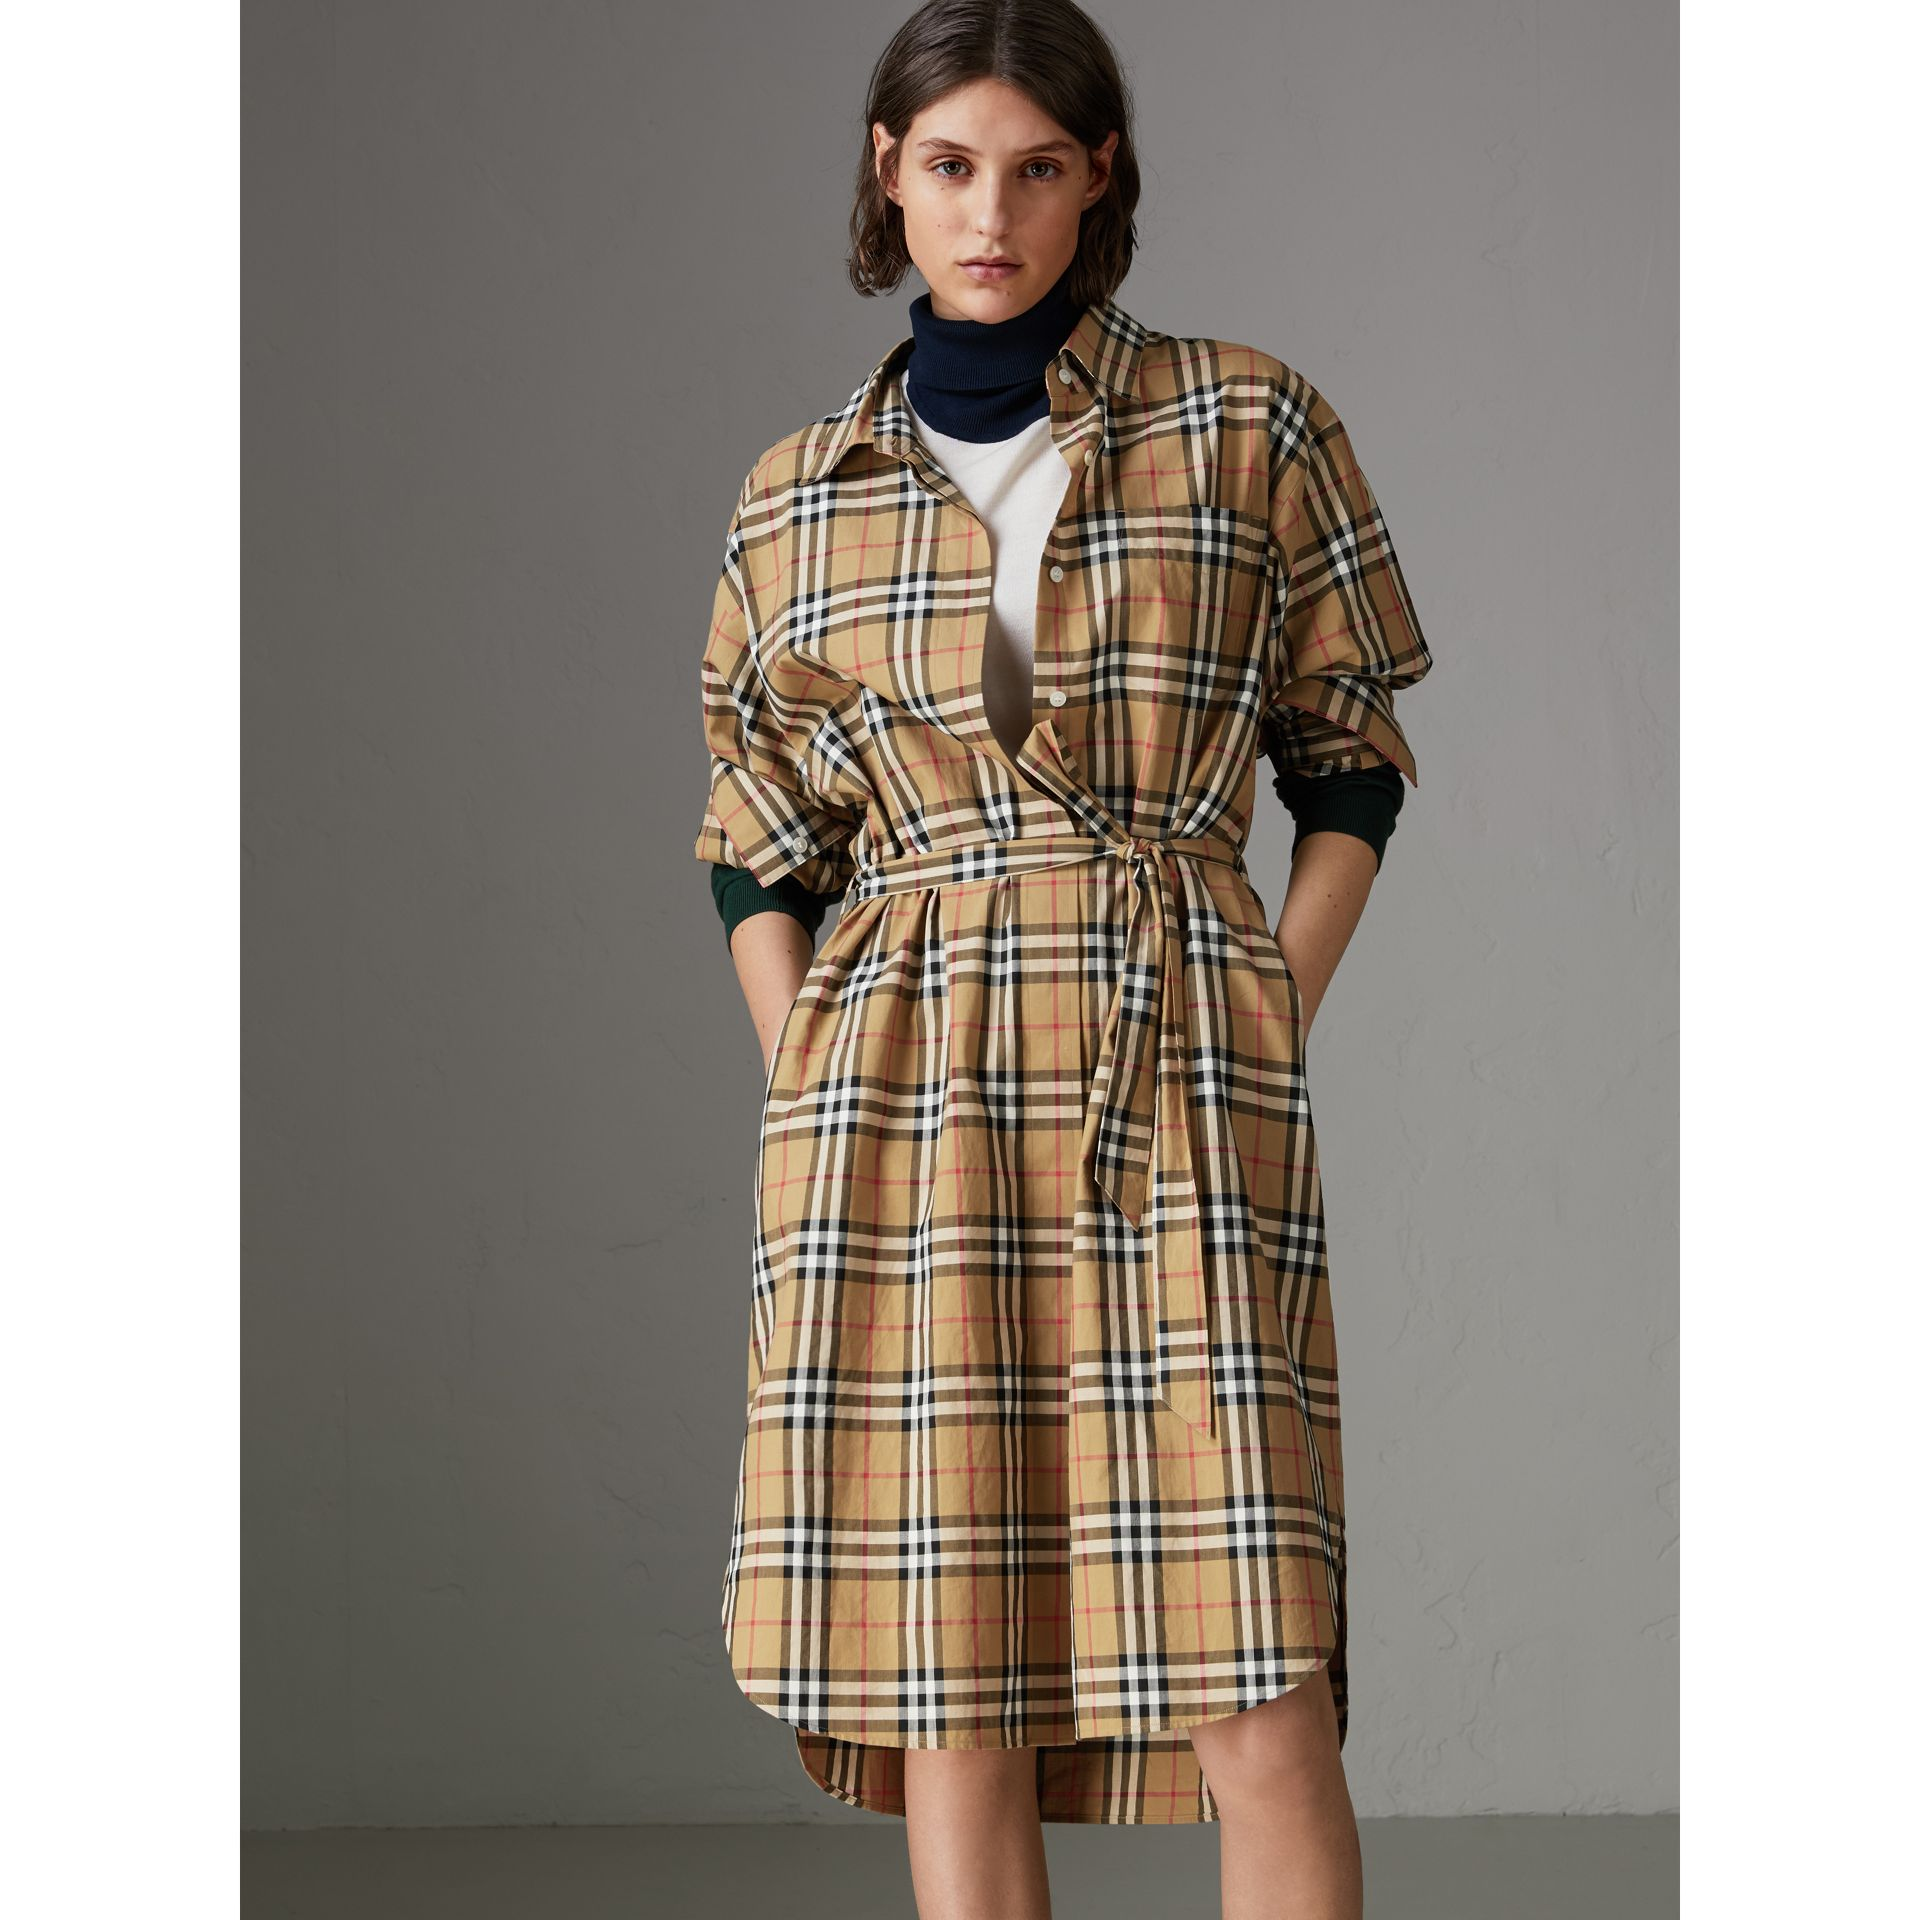 Tie-waist Vintage Check Cotton Shirt Dress in Antique Yellow - Women | Burberry Australia - gallery image 3